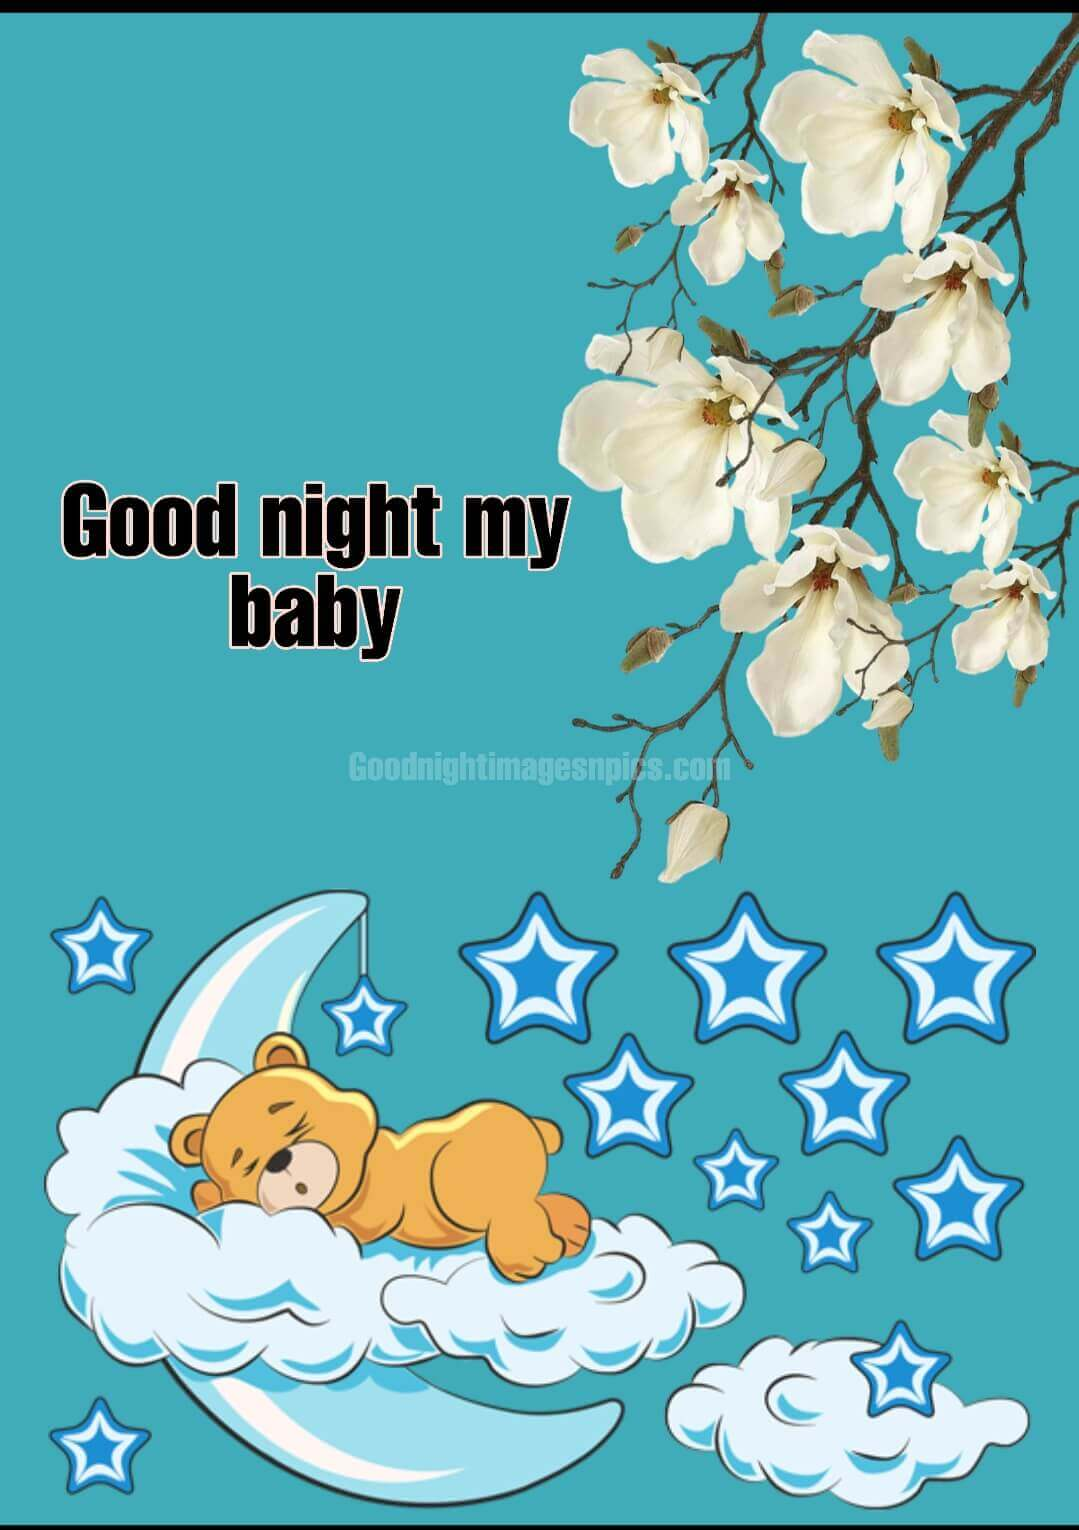 Lovely Images of Good Night for Love